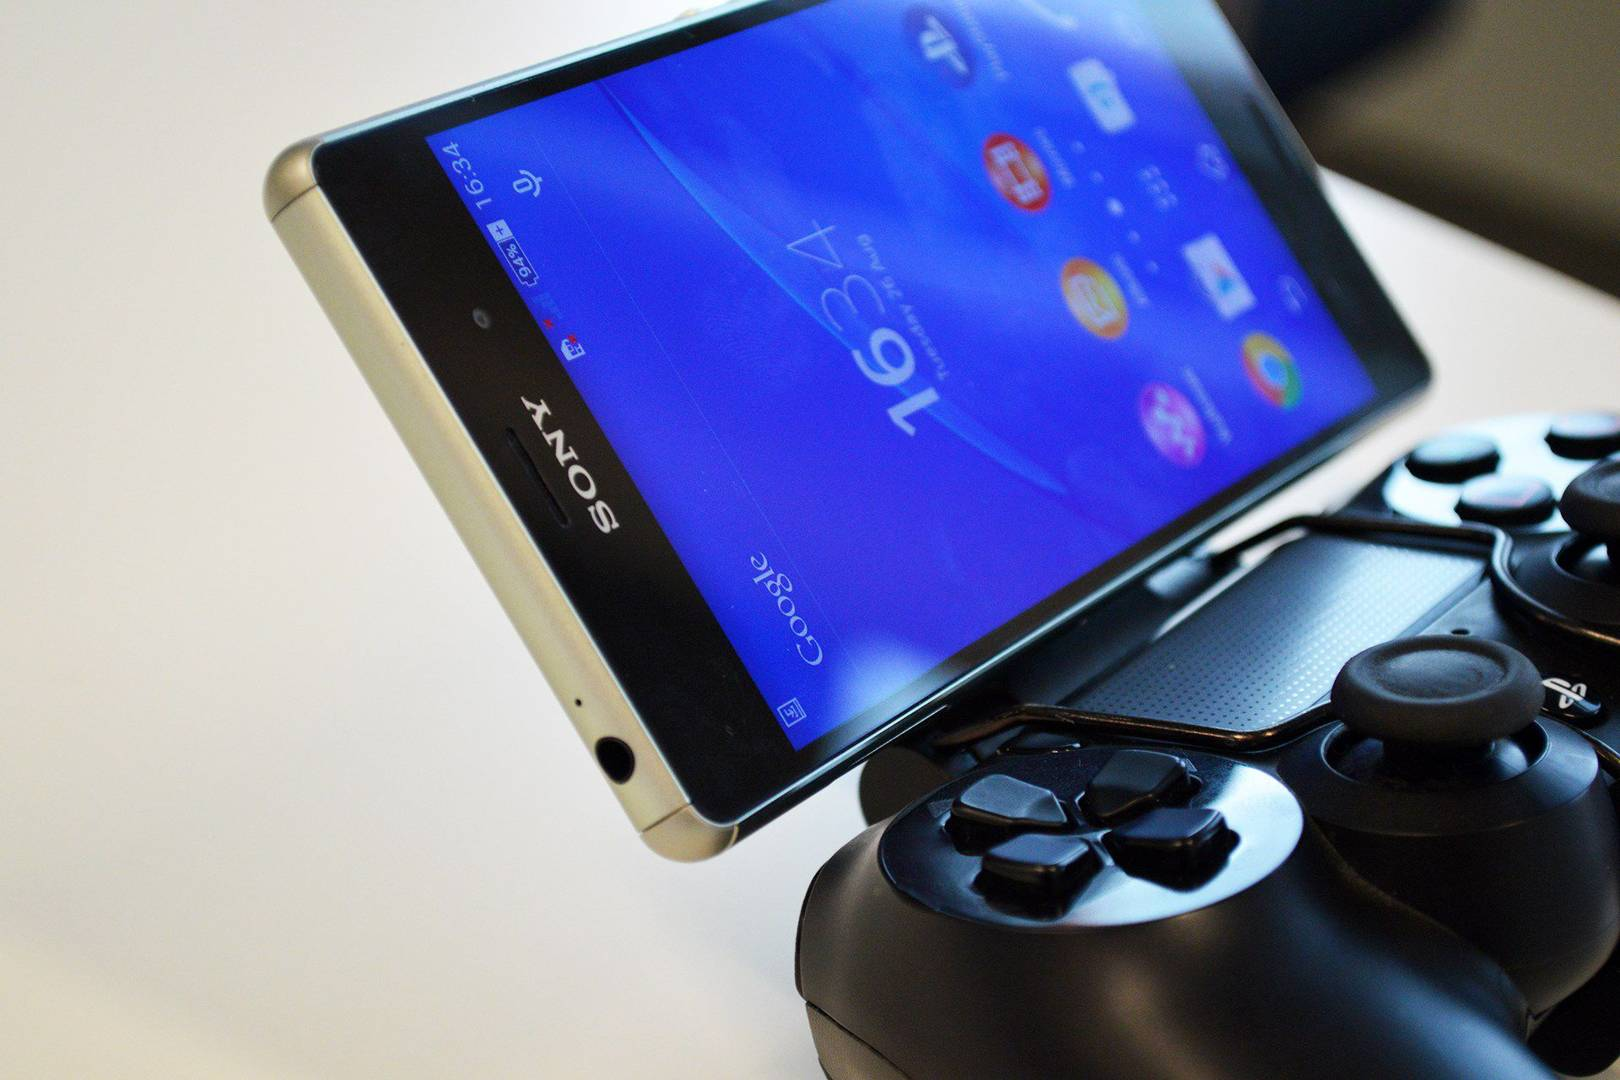 Sony Xperia Z3 Tablet Compact And Game Control Mount Hands On Wired Uk Seken